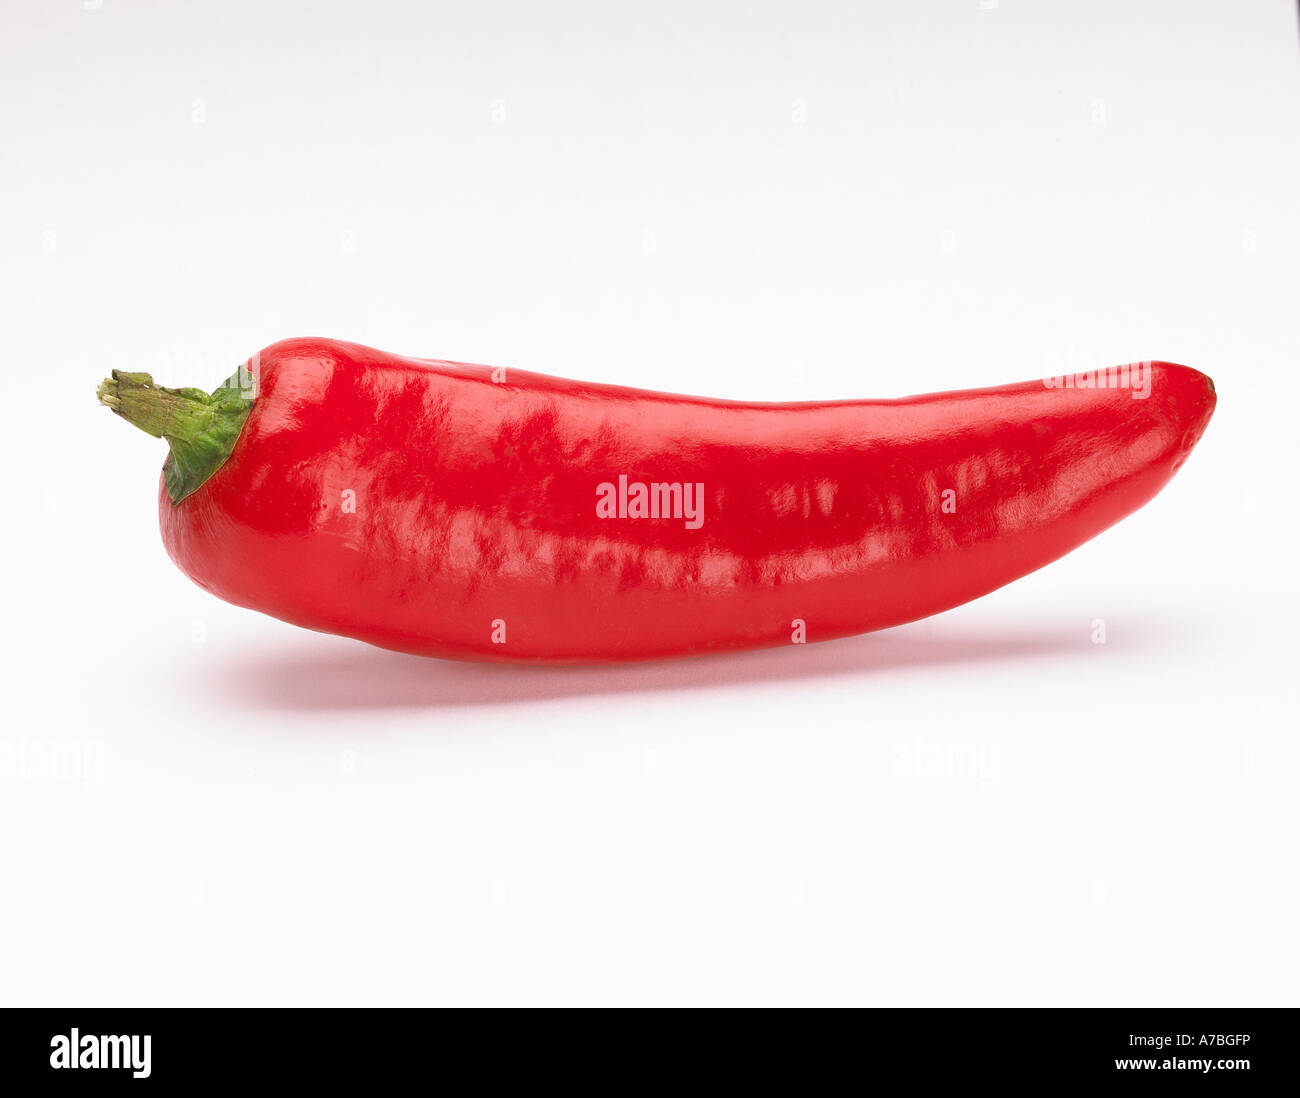 SINGLE RED HOT CHILLI PEPPER ON WHITE BACKGROUND - Stock Image